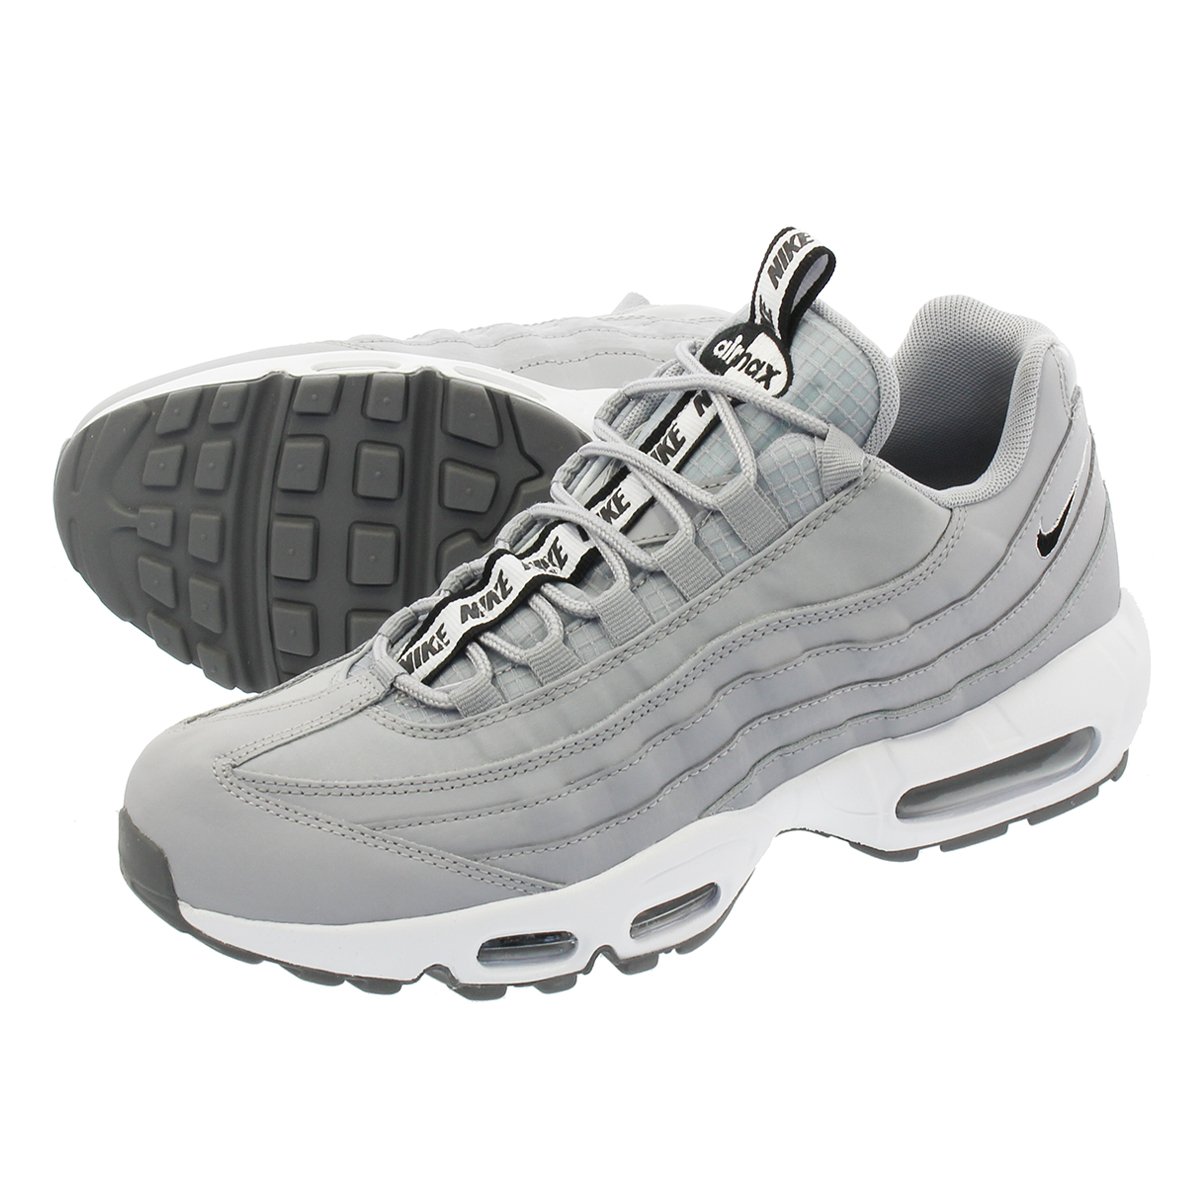 competitive price 1407f e25f6 NIKE AIR MAX 95 SE Kie Ney AMAX 95 SE GREY WHITE BLACK aq4129-001